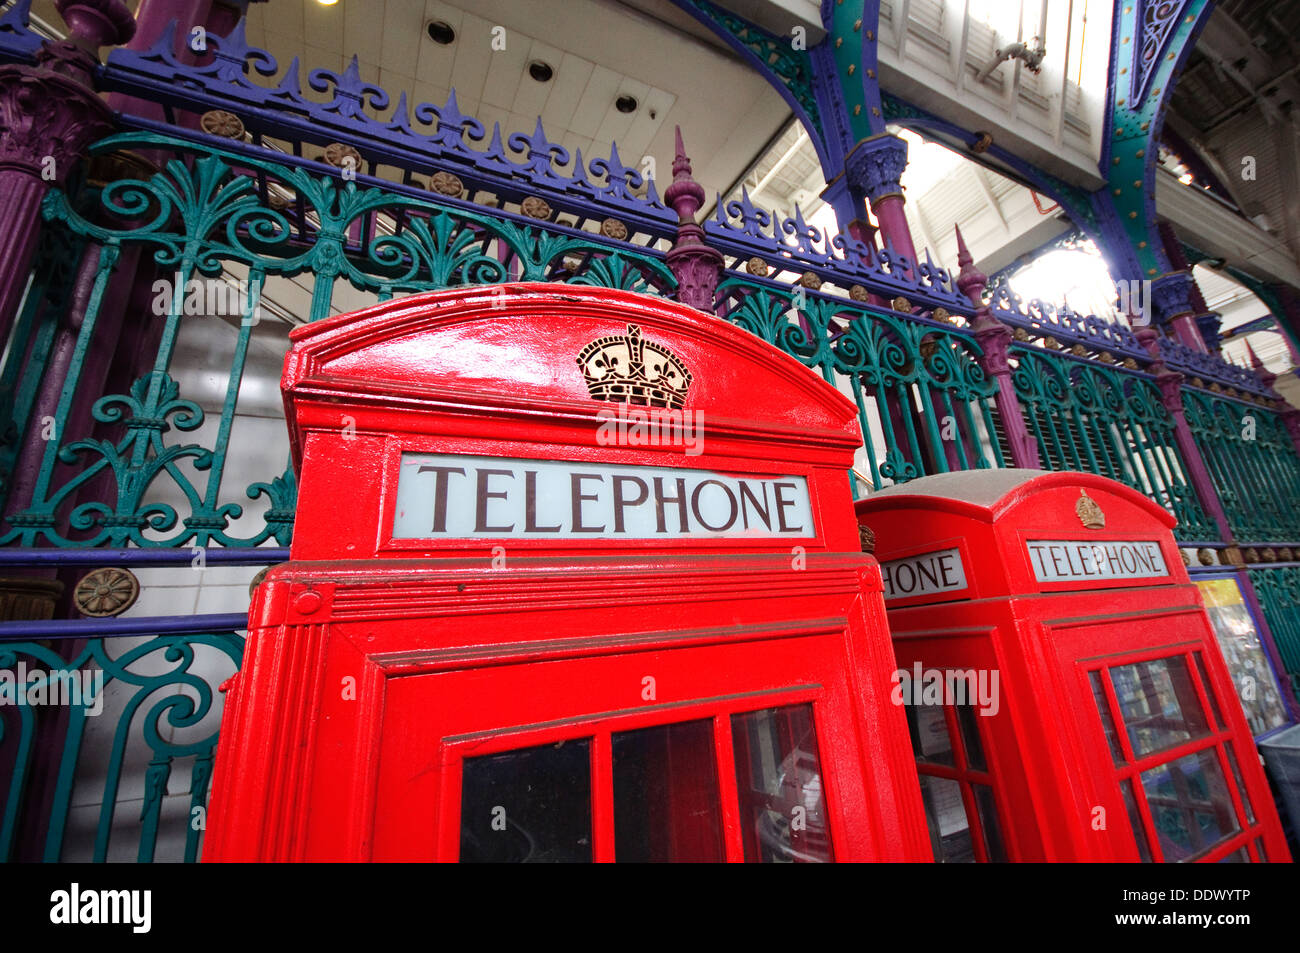 England, London, Smithfield Market, Red Telephone Box - Stock Image